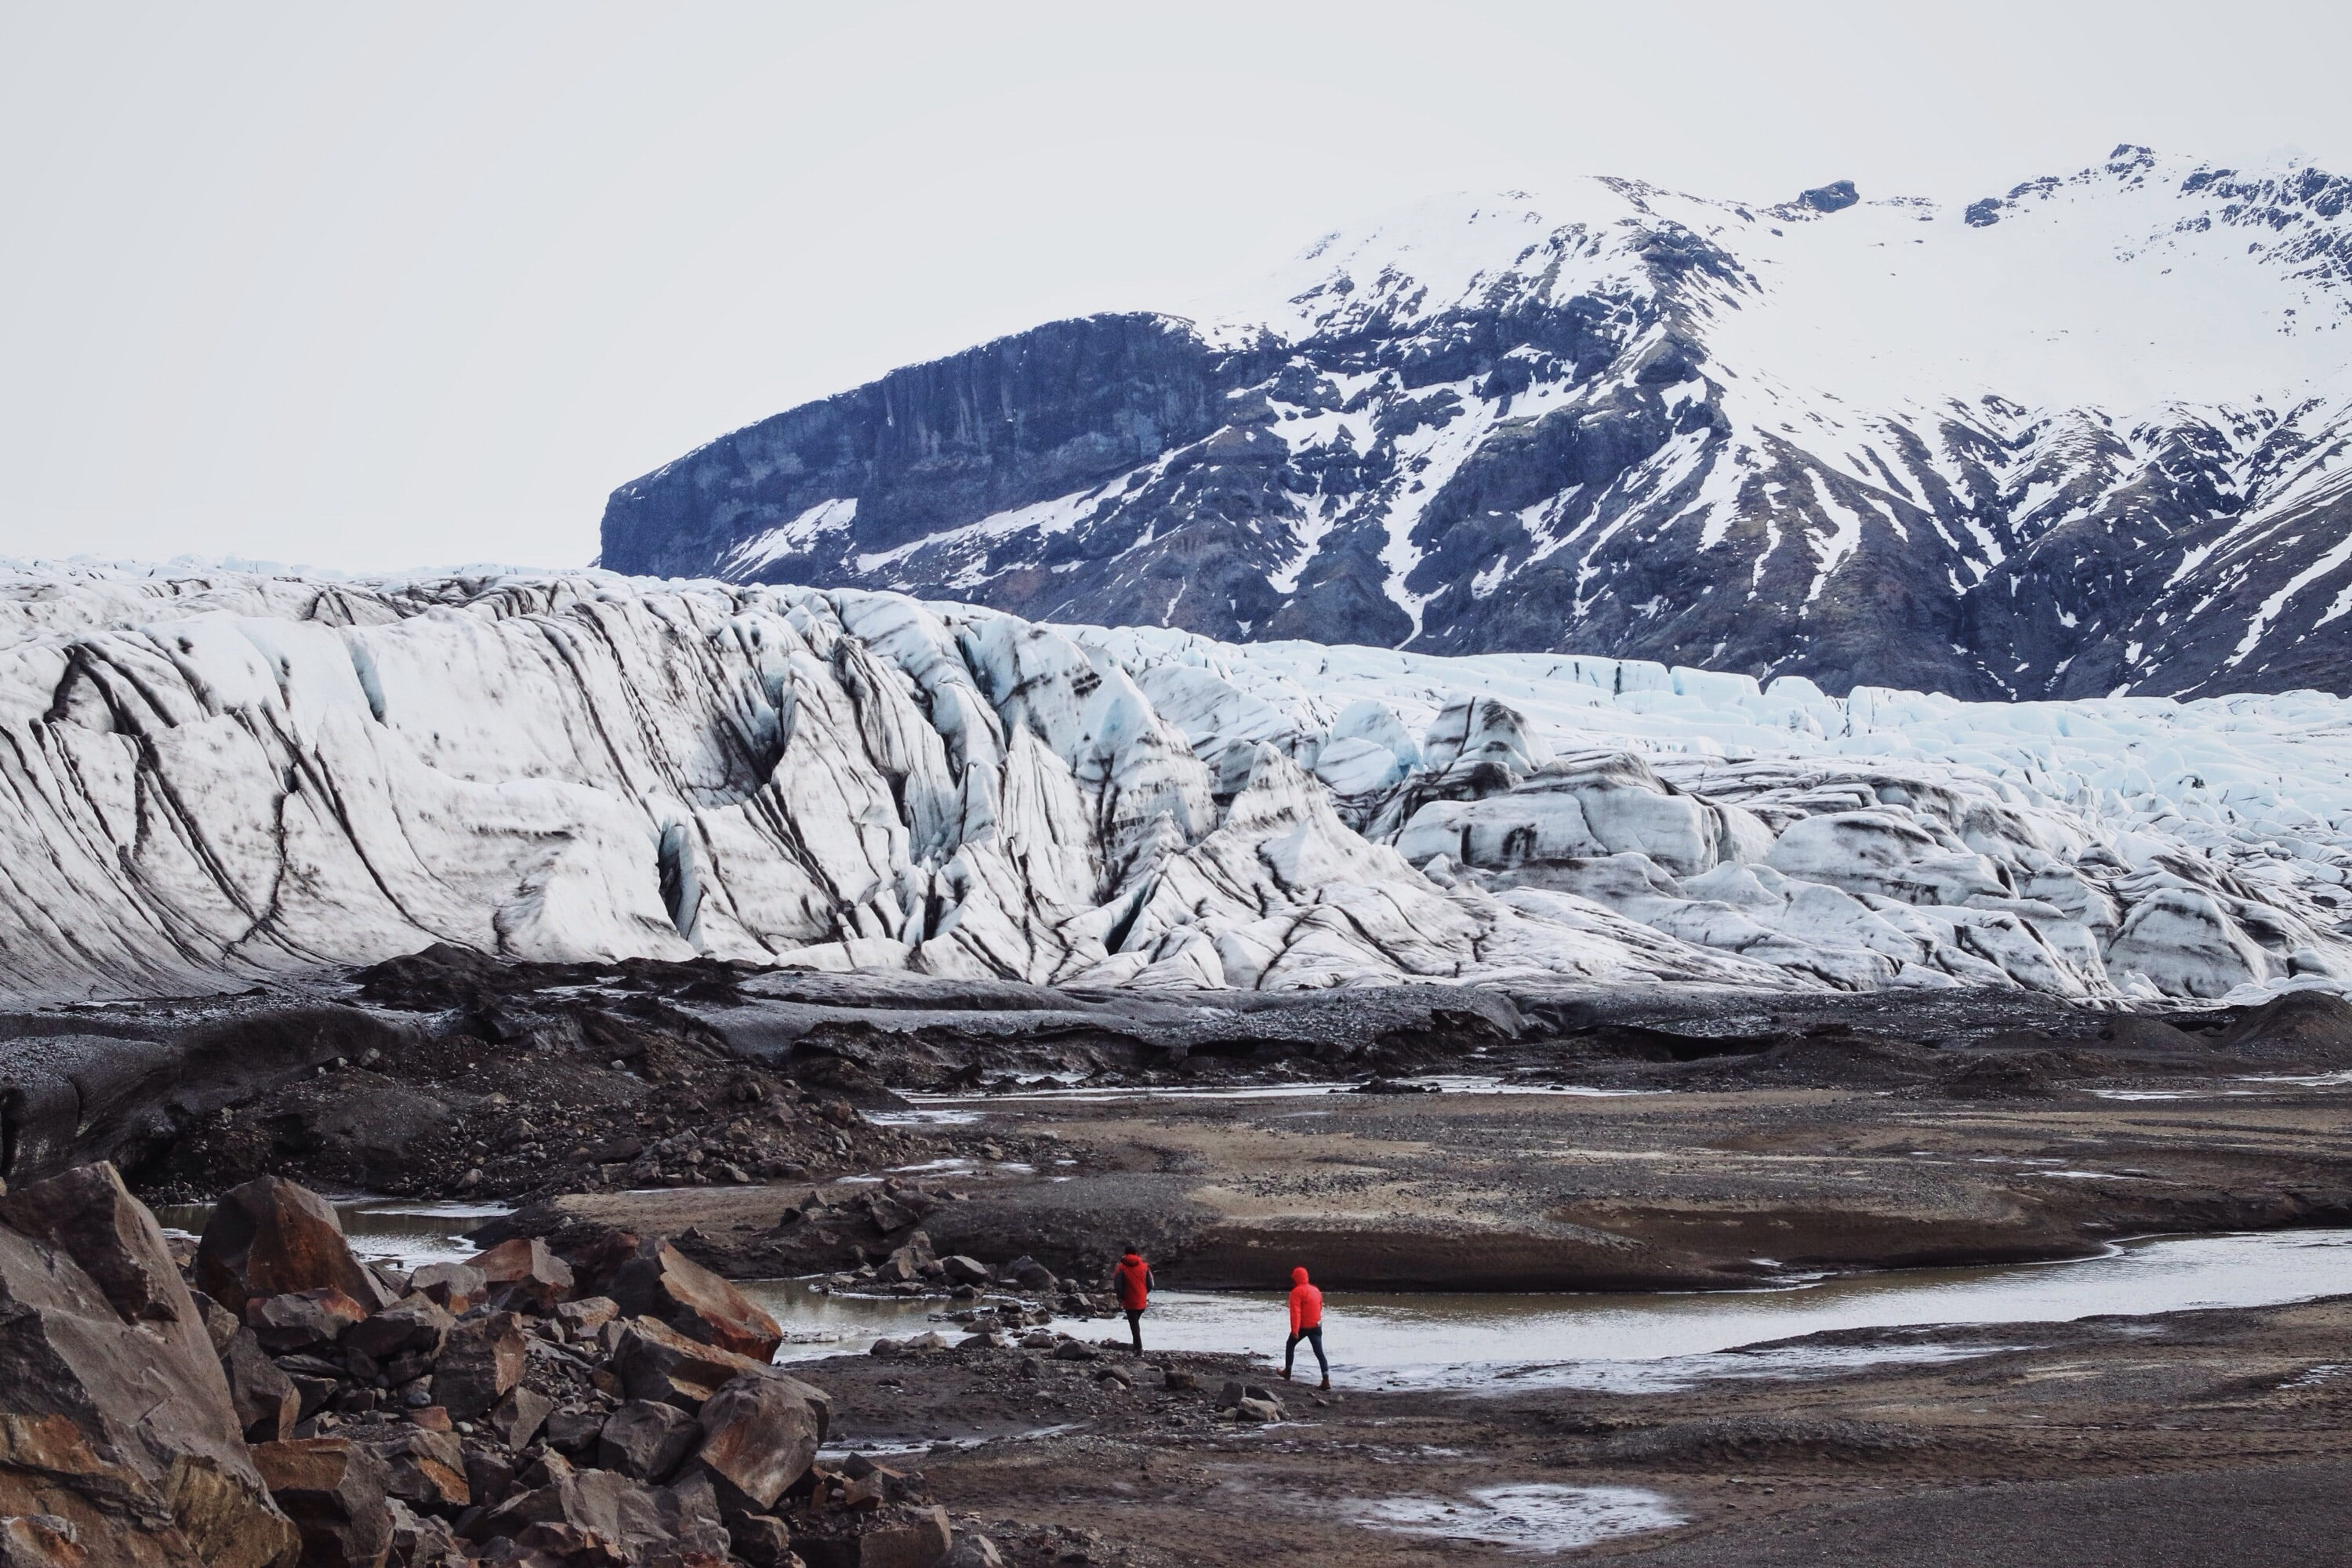 Two people in red jackets walking along a stream flowing under a mountain glacier